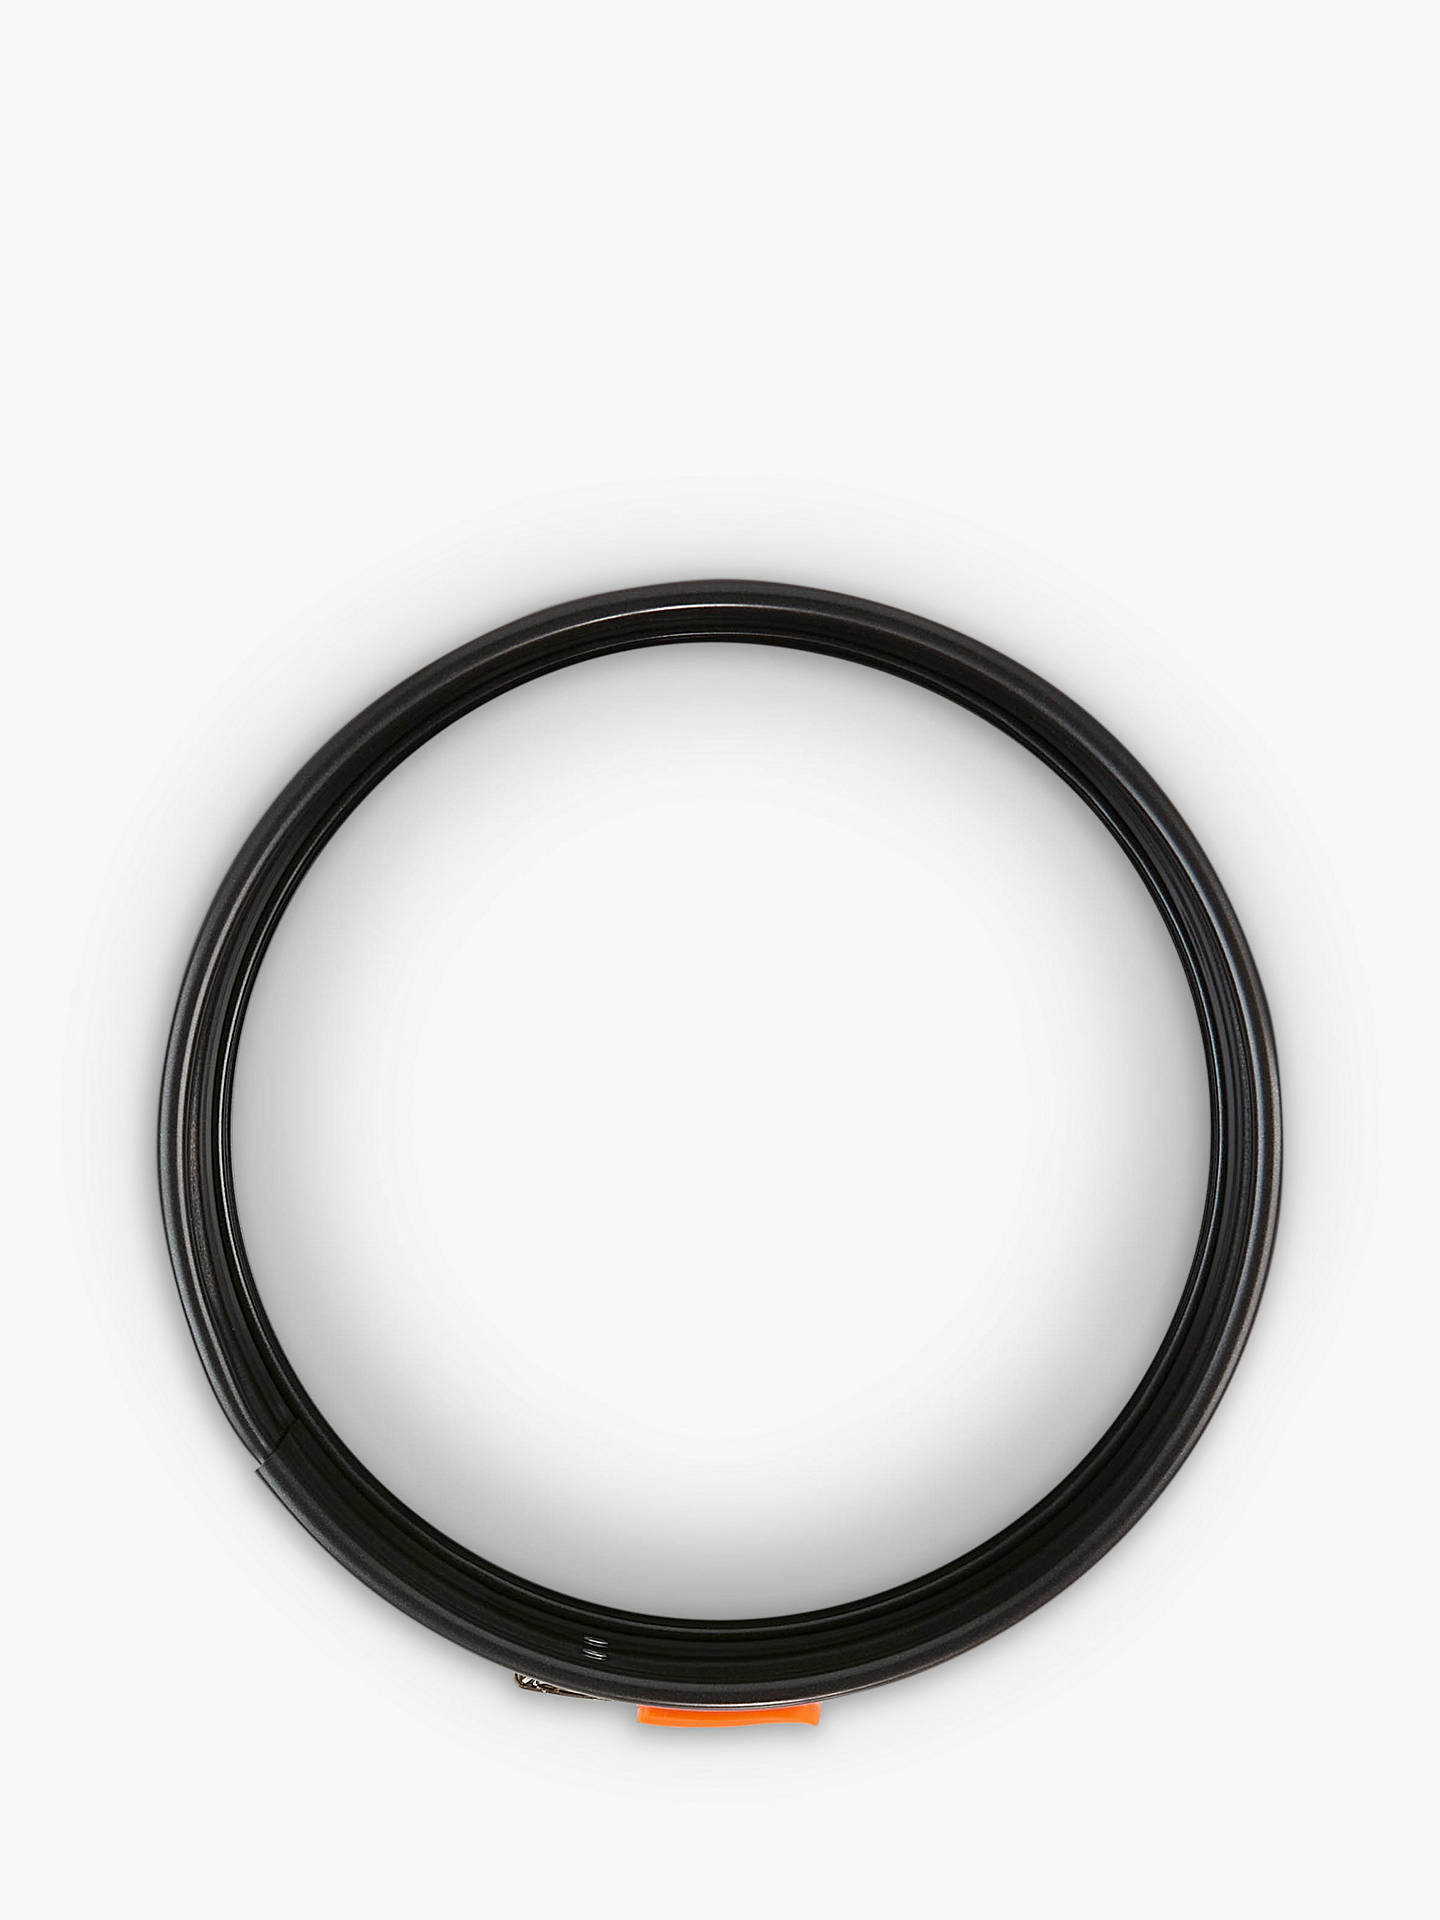 BuyLe Creuset 20cm Springform Cake Tin Online at johnlewis.com